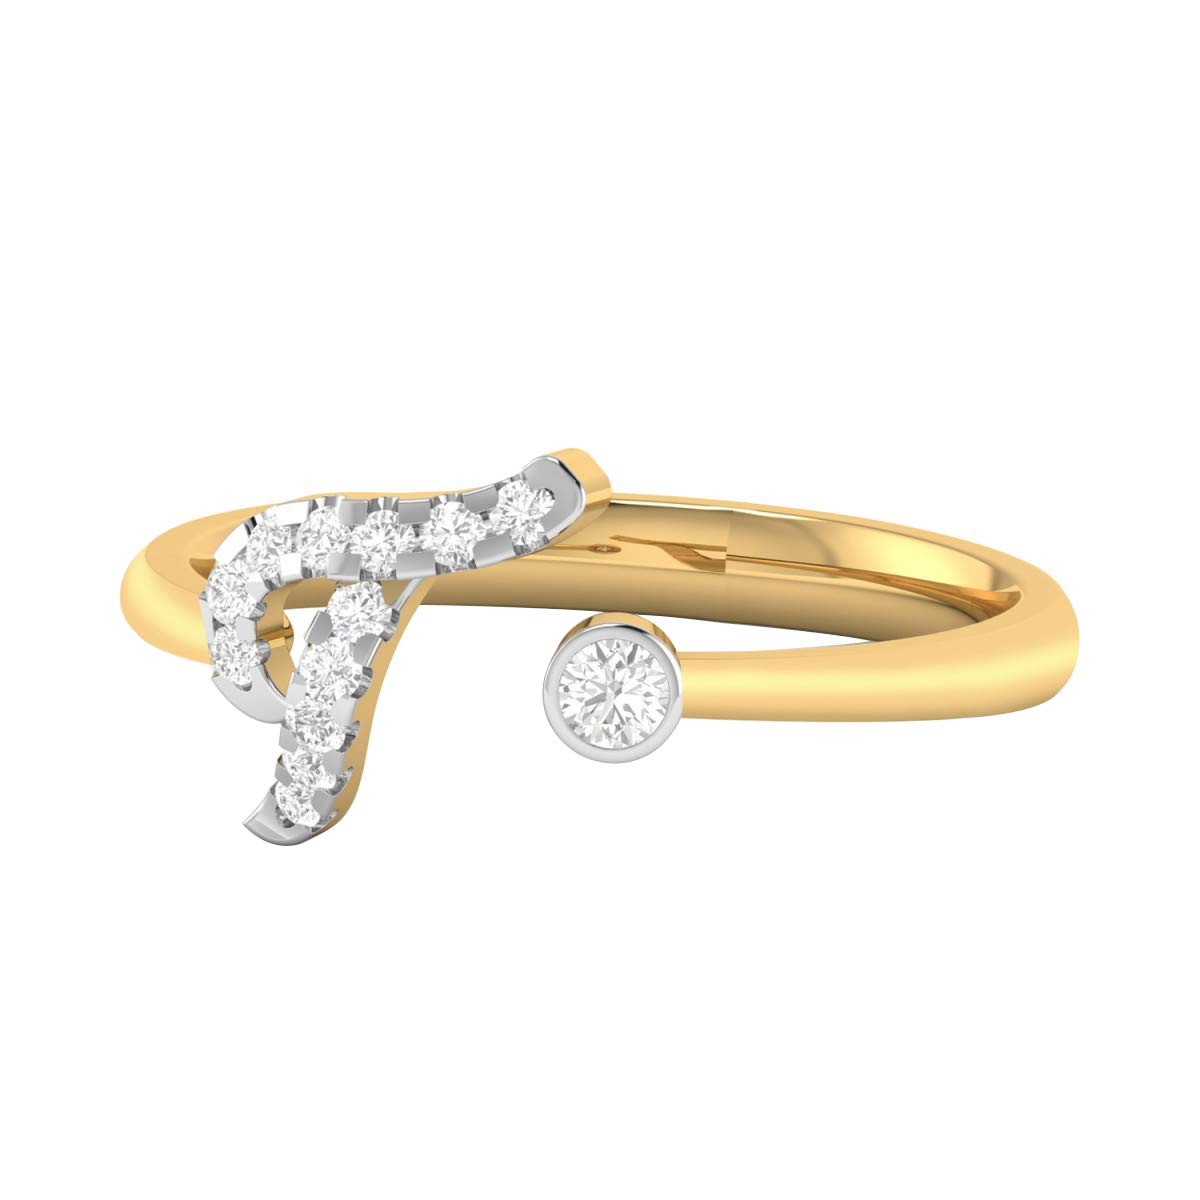 DTJEWELS T Letter Adjustable Ring 0.81 Ctw Round Cut Sim Diamond in 14K Yellow Gold Plated Sterling